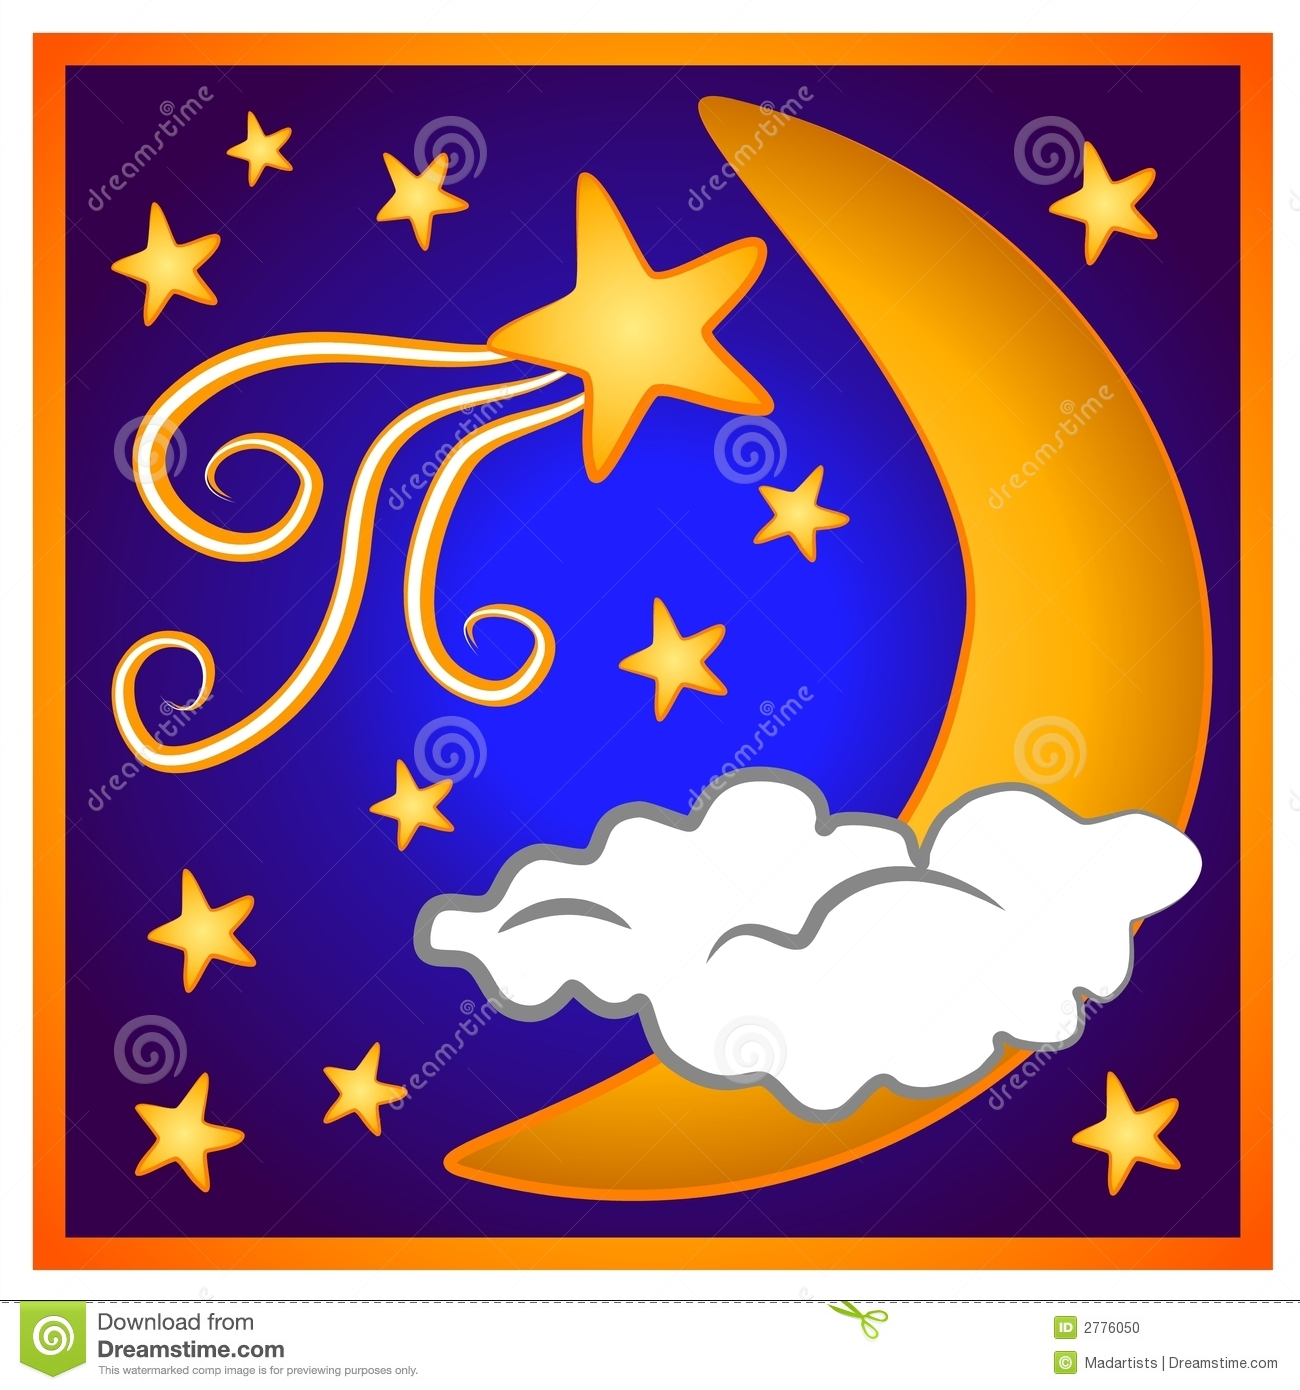 Star And Moon Graphic Pictures to Pin on Pinterest.